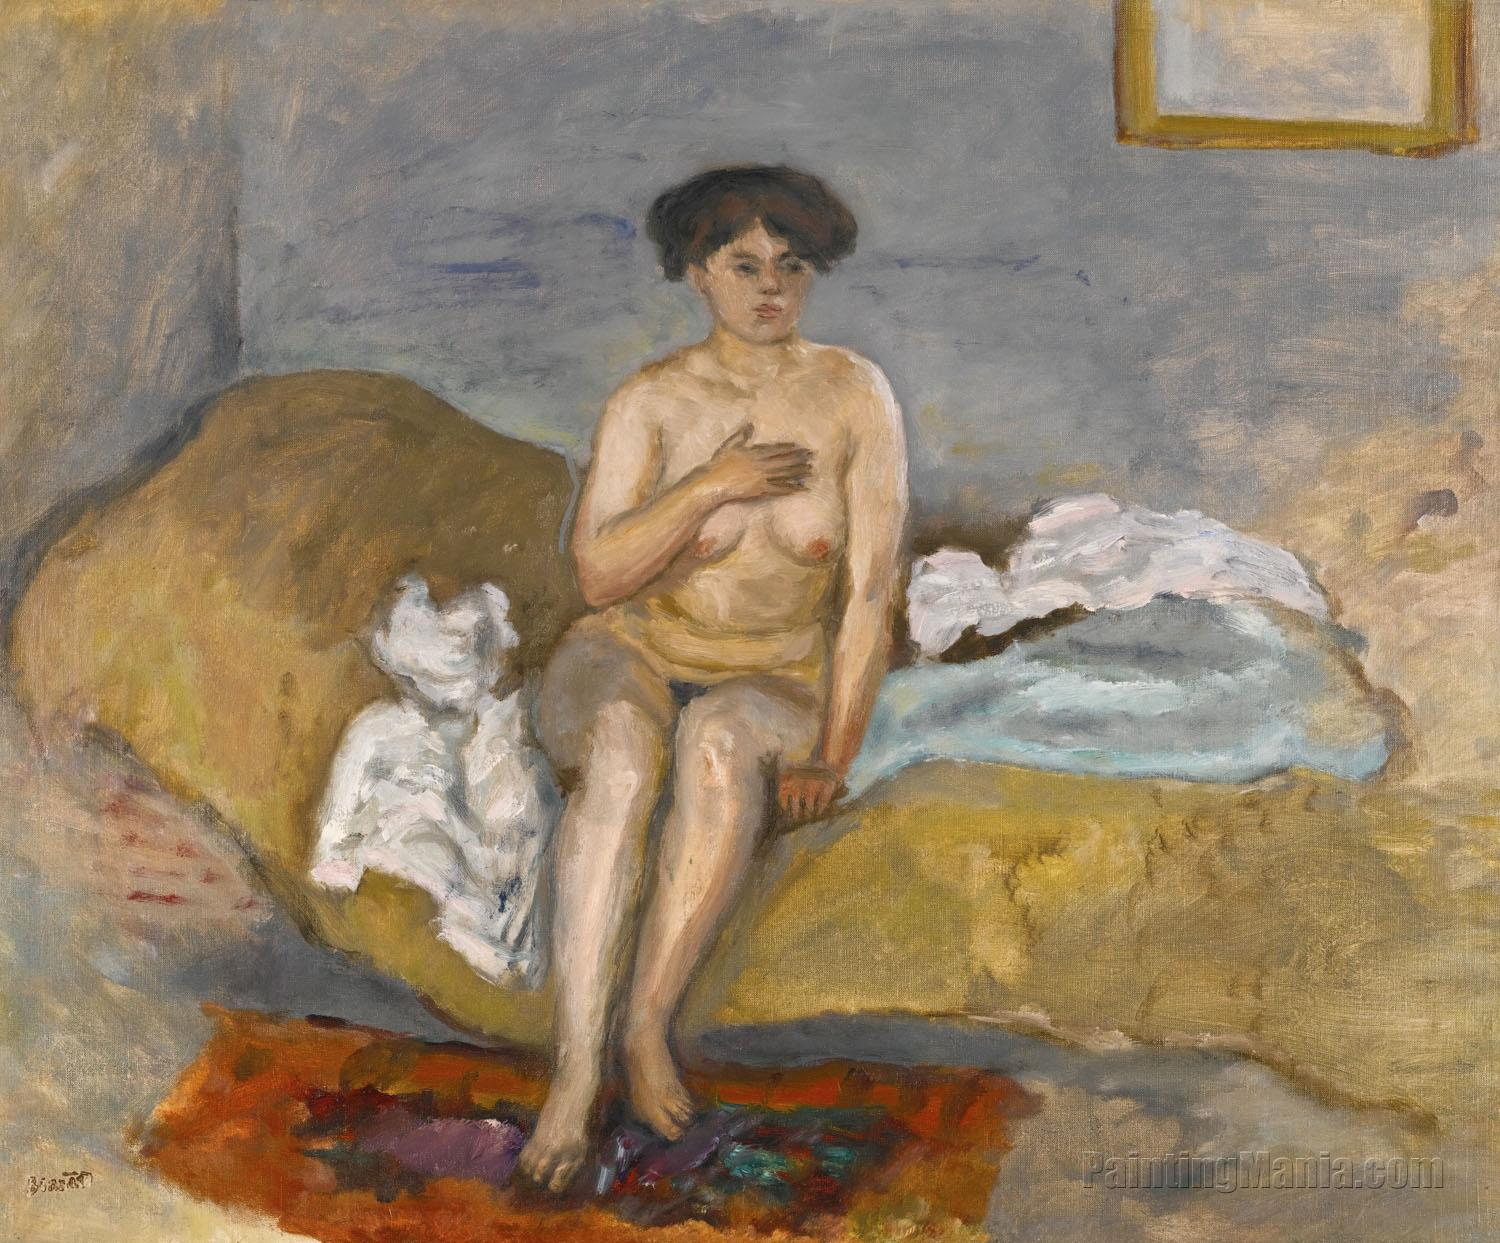 Naked Woman Sitting on a Couch